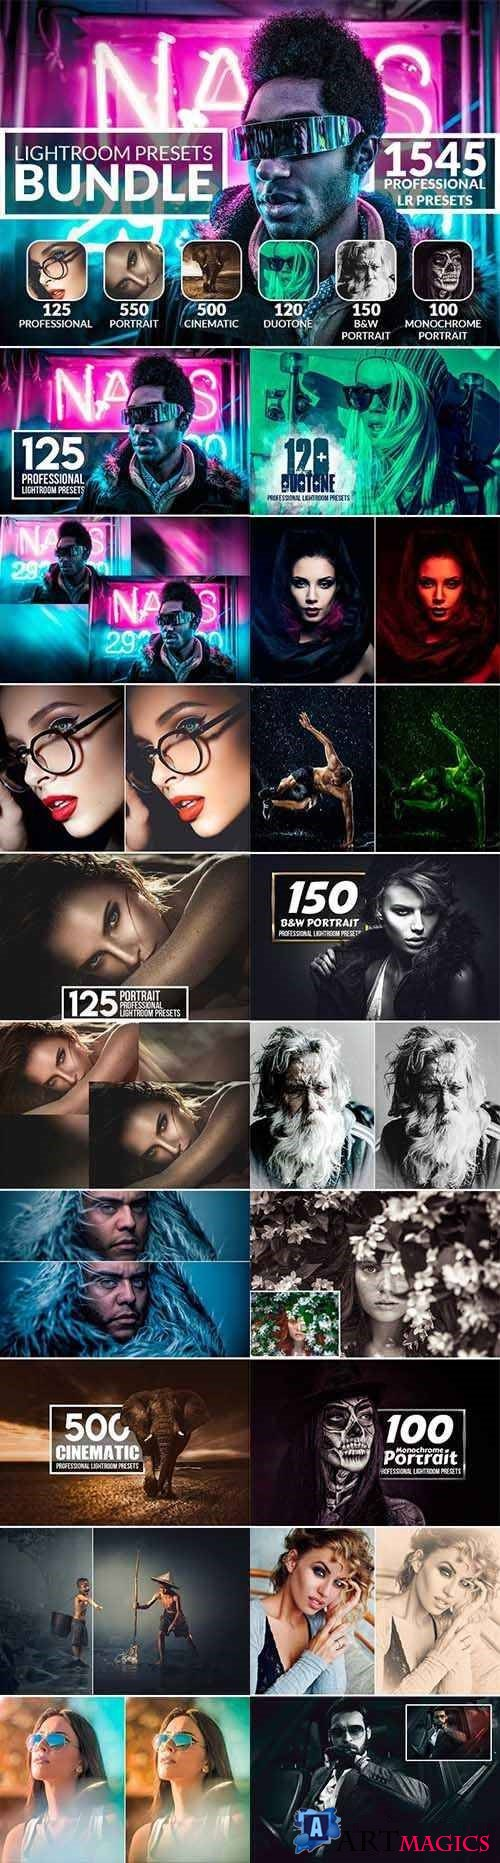 PRO Lightroom Presets Bundle 2544334